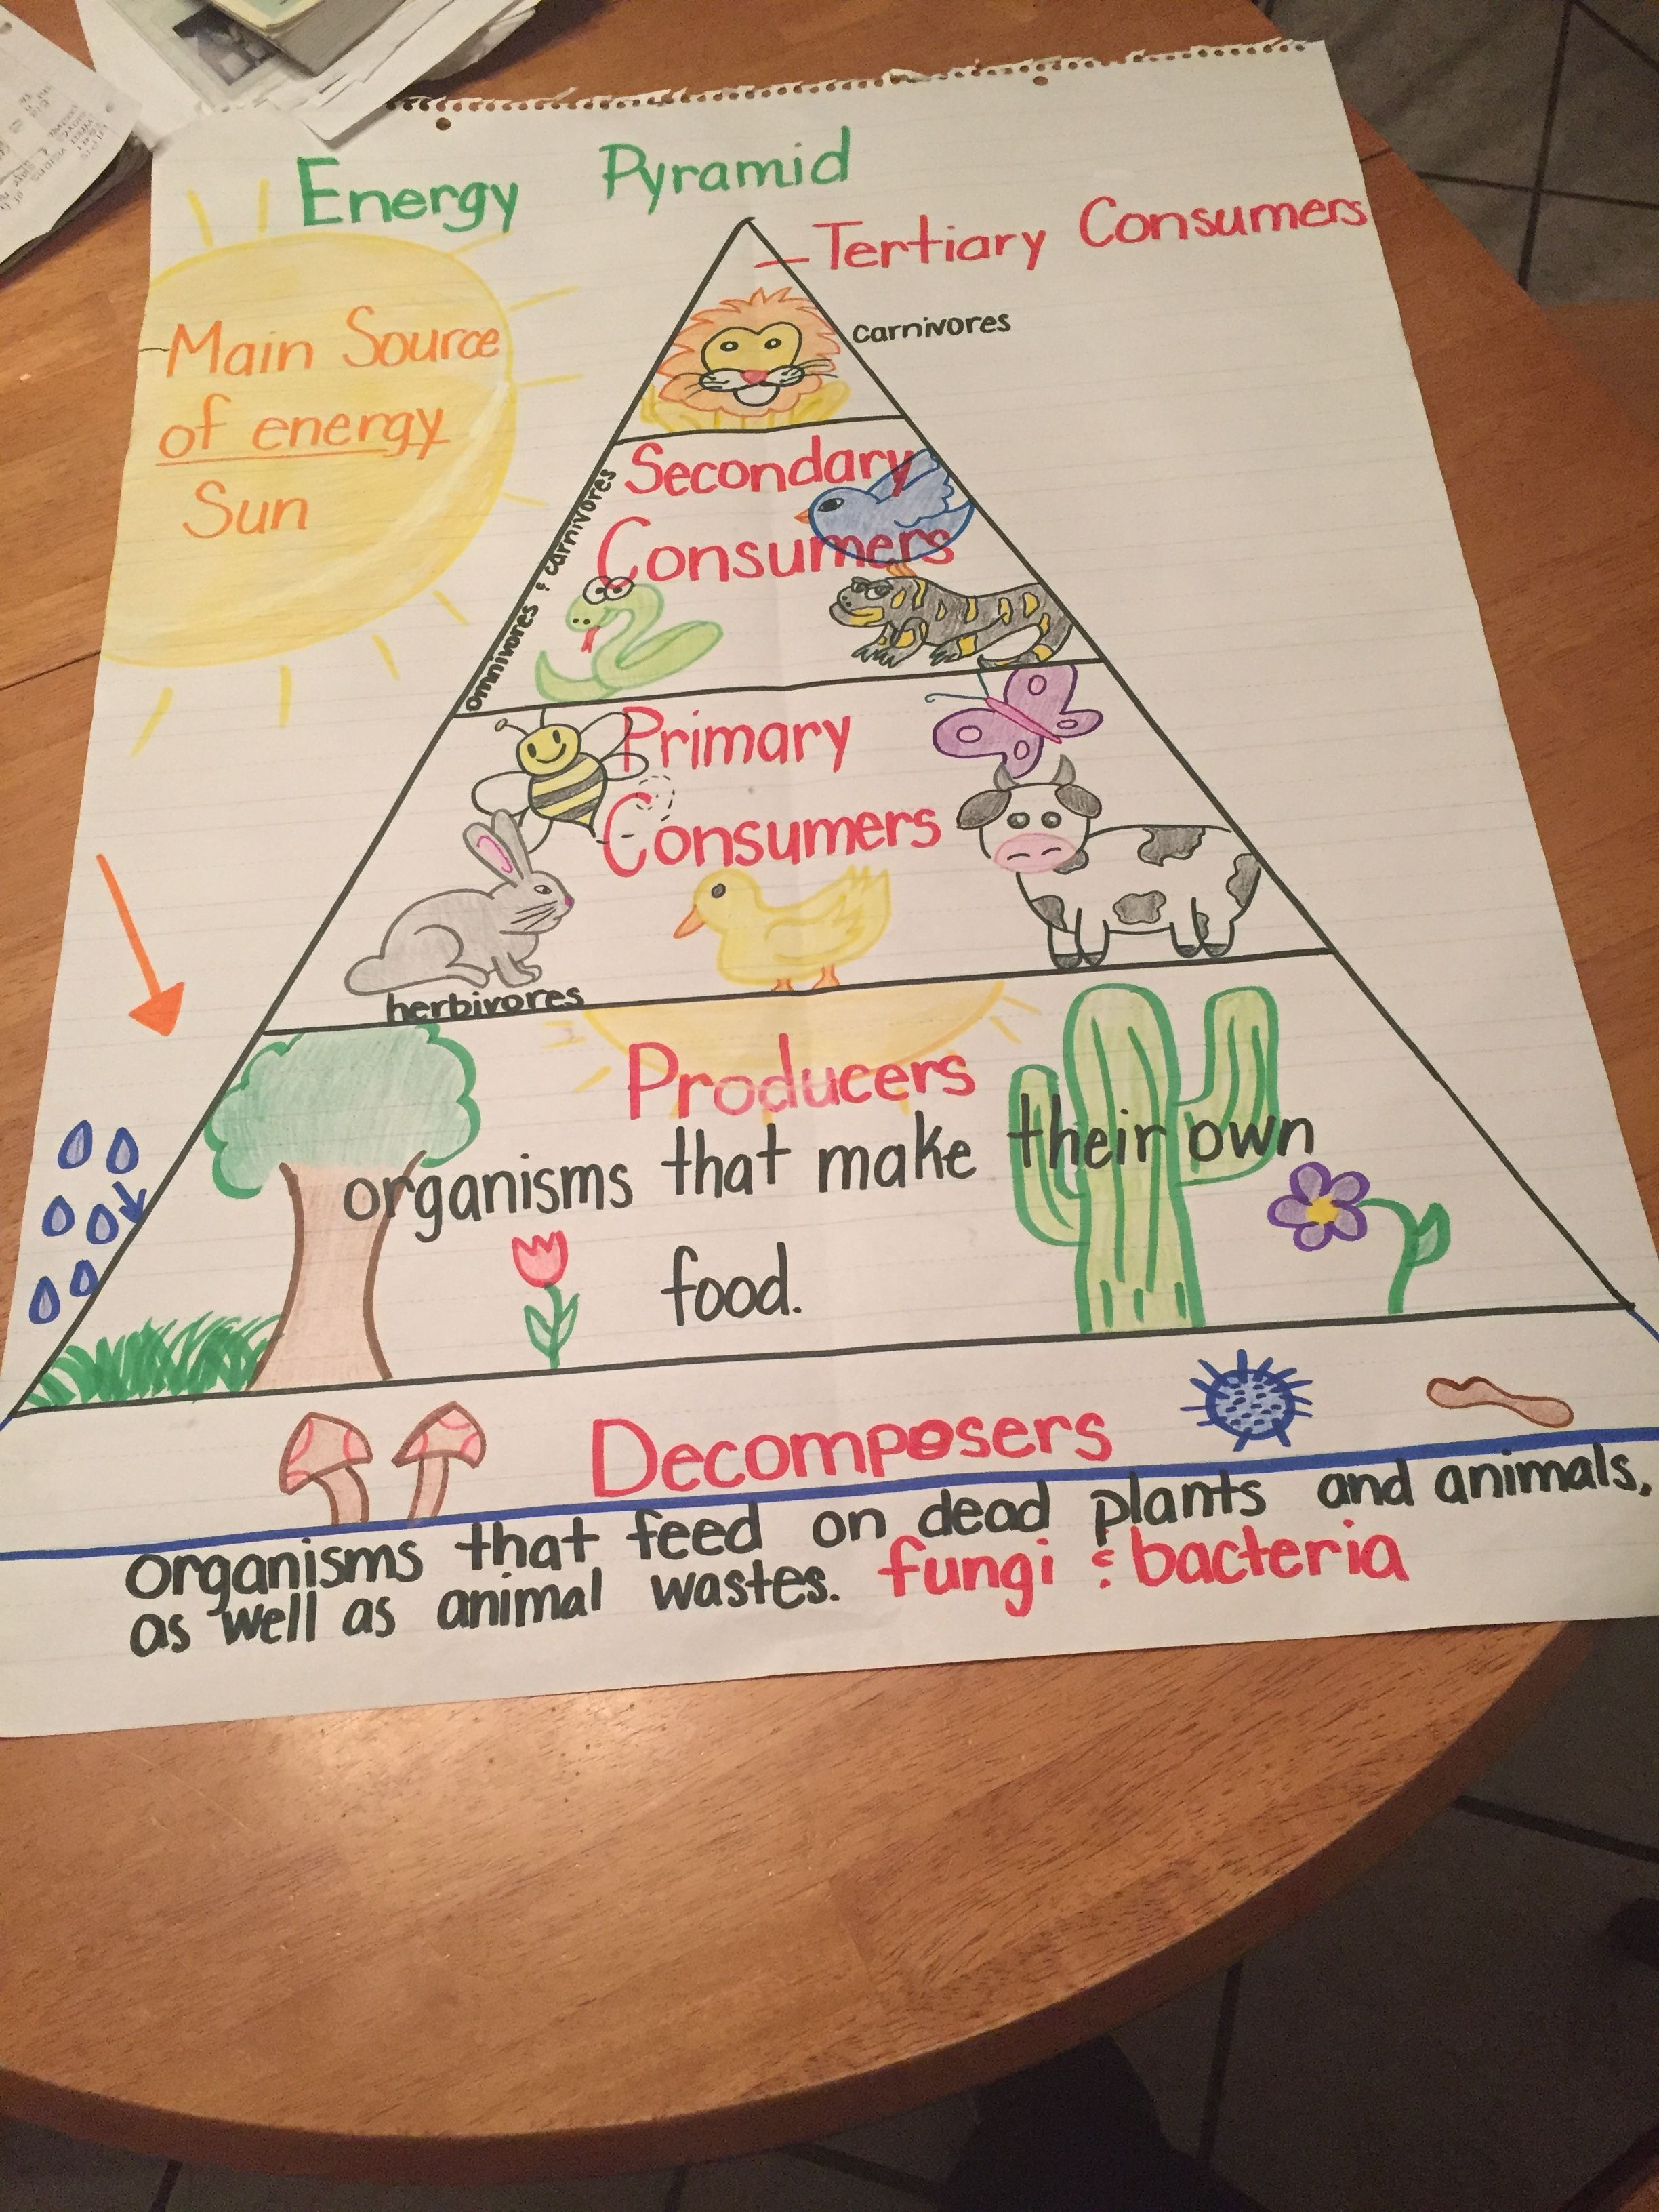 Food chain energy pyramid. 5th grade   5th grade science [ 3264 x 2448 Pixel ]